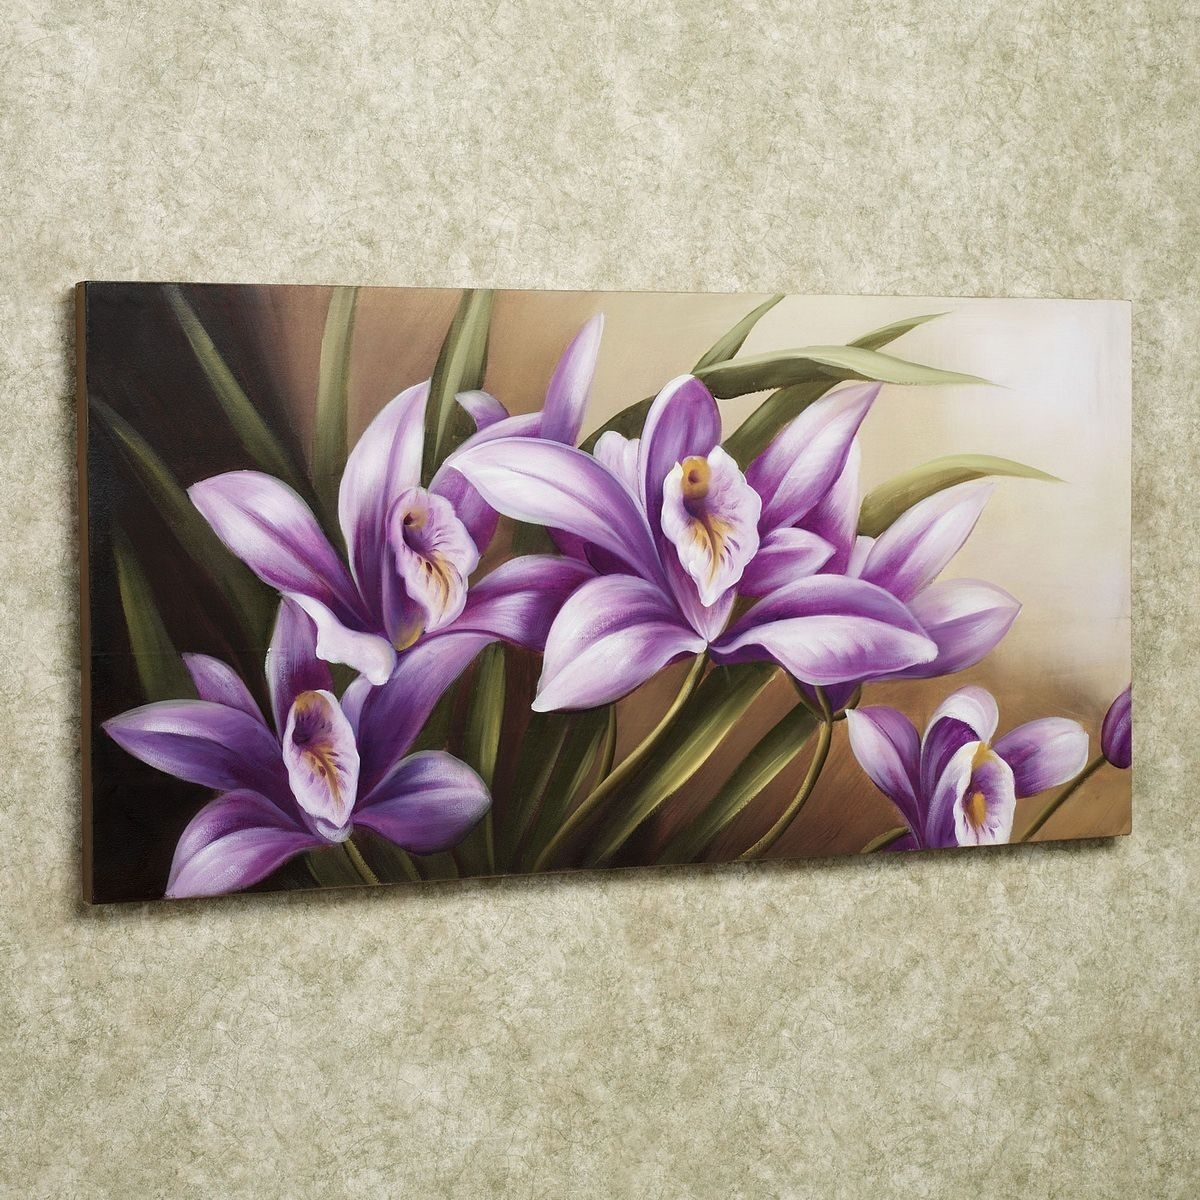 Easy Canvas Painting Ideas:scenic Ideas Sensuality Of Iris Purple Pertaining To Most Up To Date Purple Flowers Canvas Wall Art (View 4 of 15)